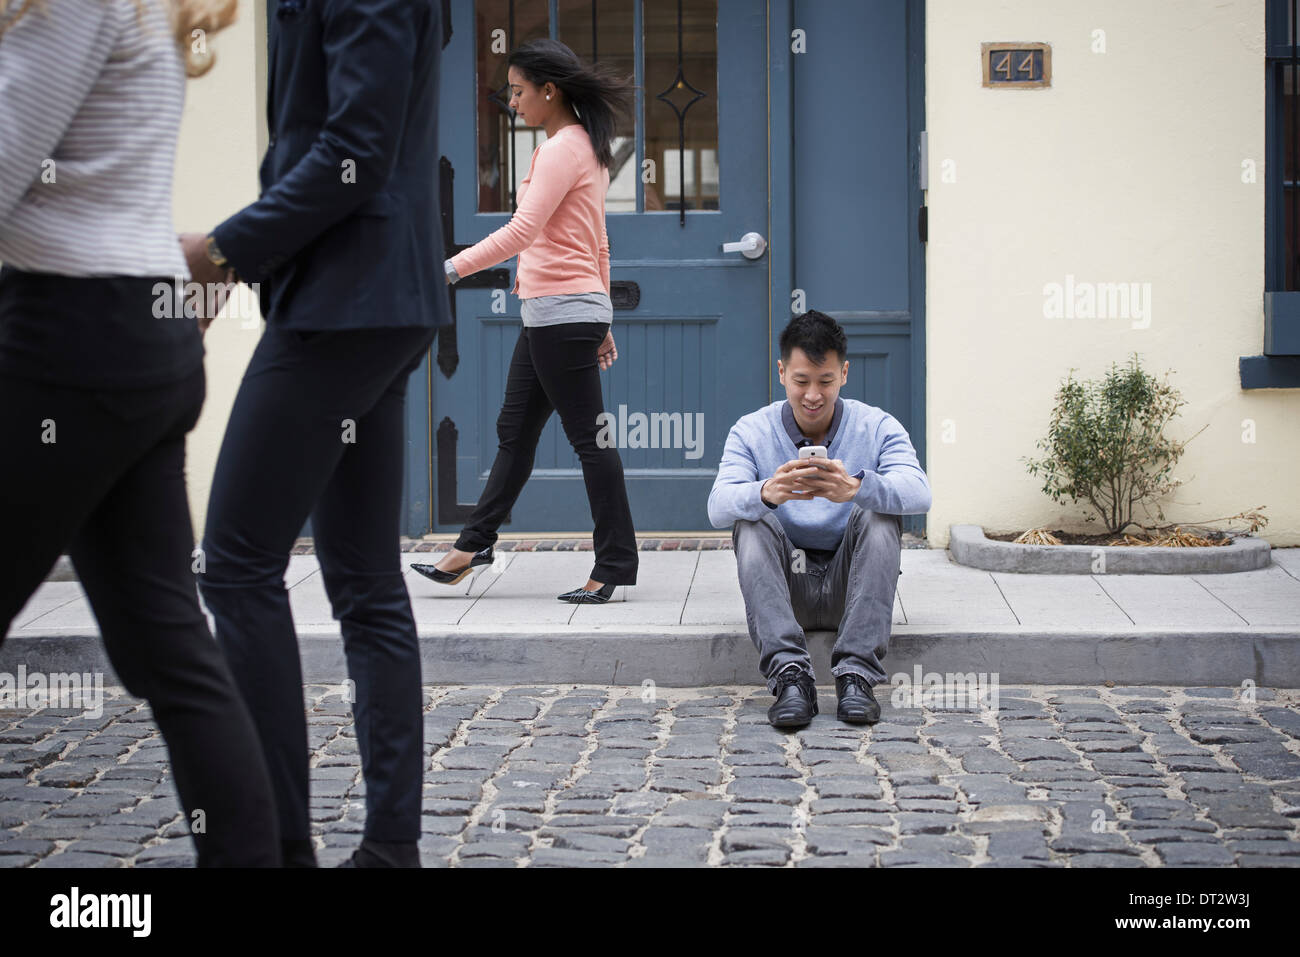 Young people outdoors on the city streets in springtime A man sitting on the ground checking his phone and three passers-by - Stock Image